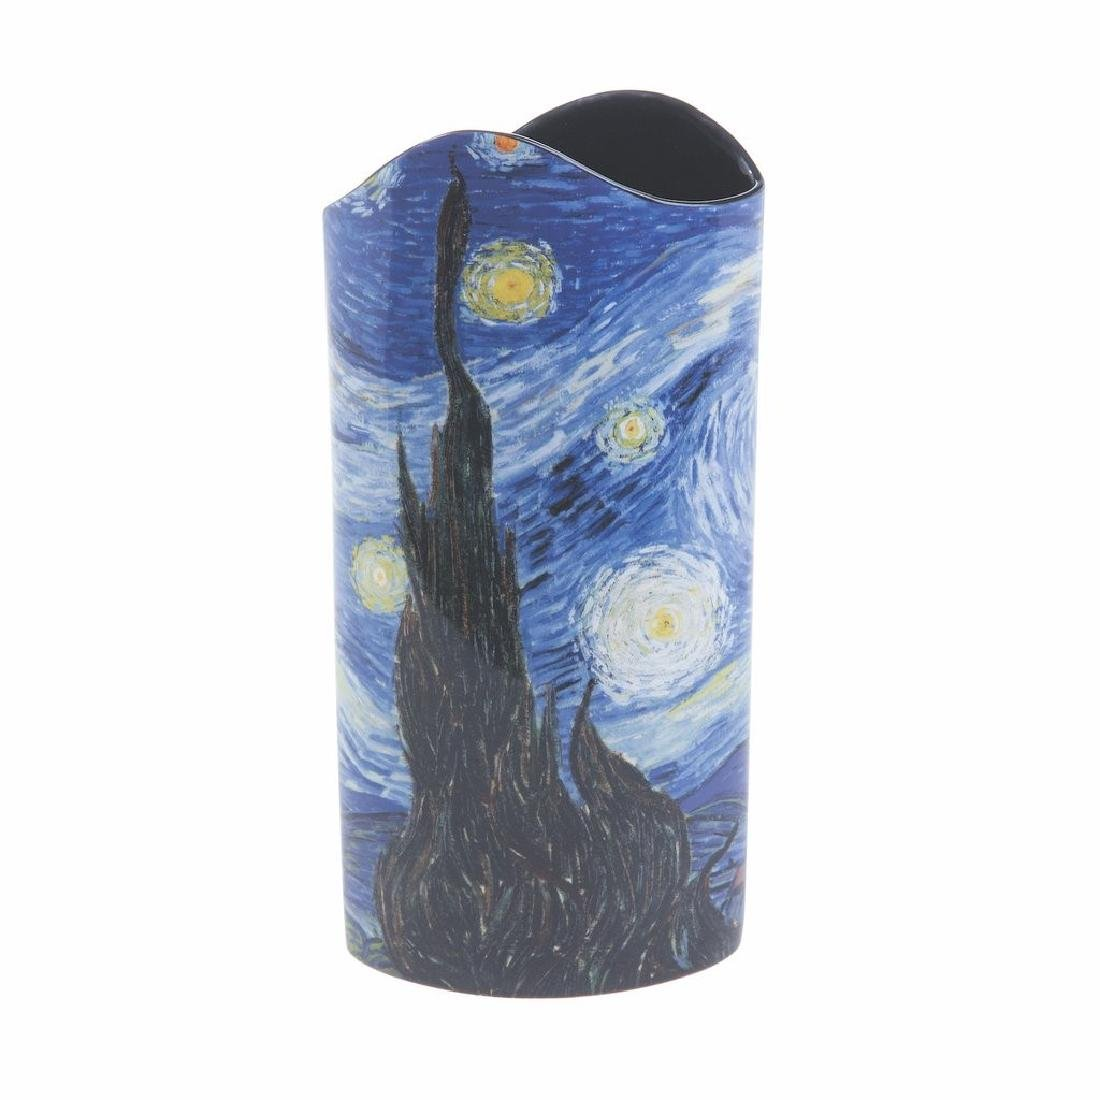 After Van Gogh: Vase The Starry Night